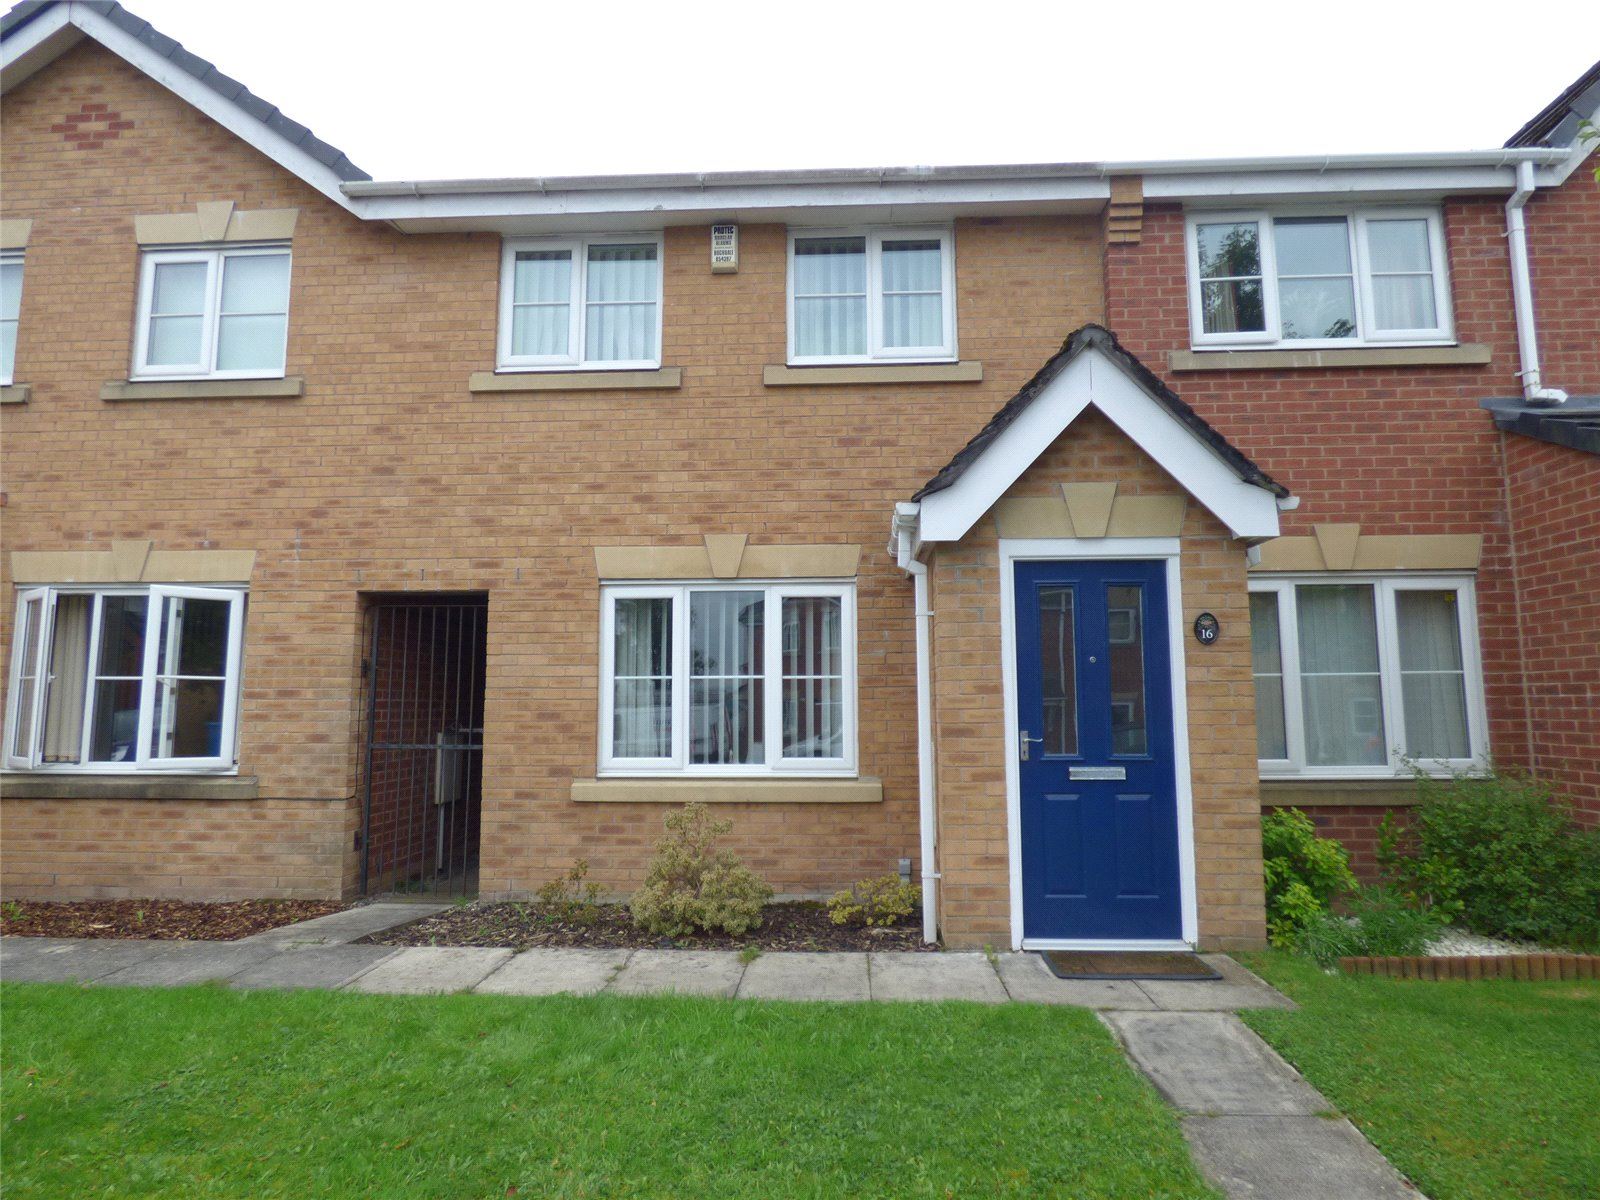 3 Bedrooms Terraced House for sale in Hansby Close, Oldham, Greater Manchester, OL1